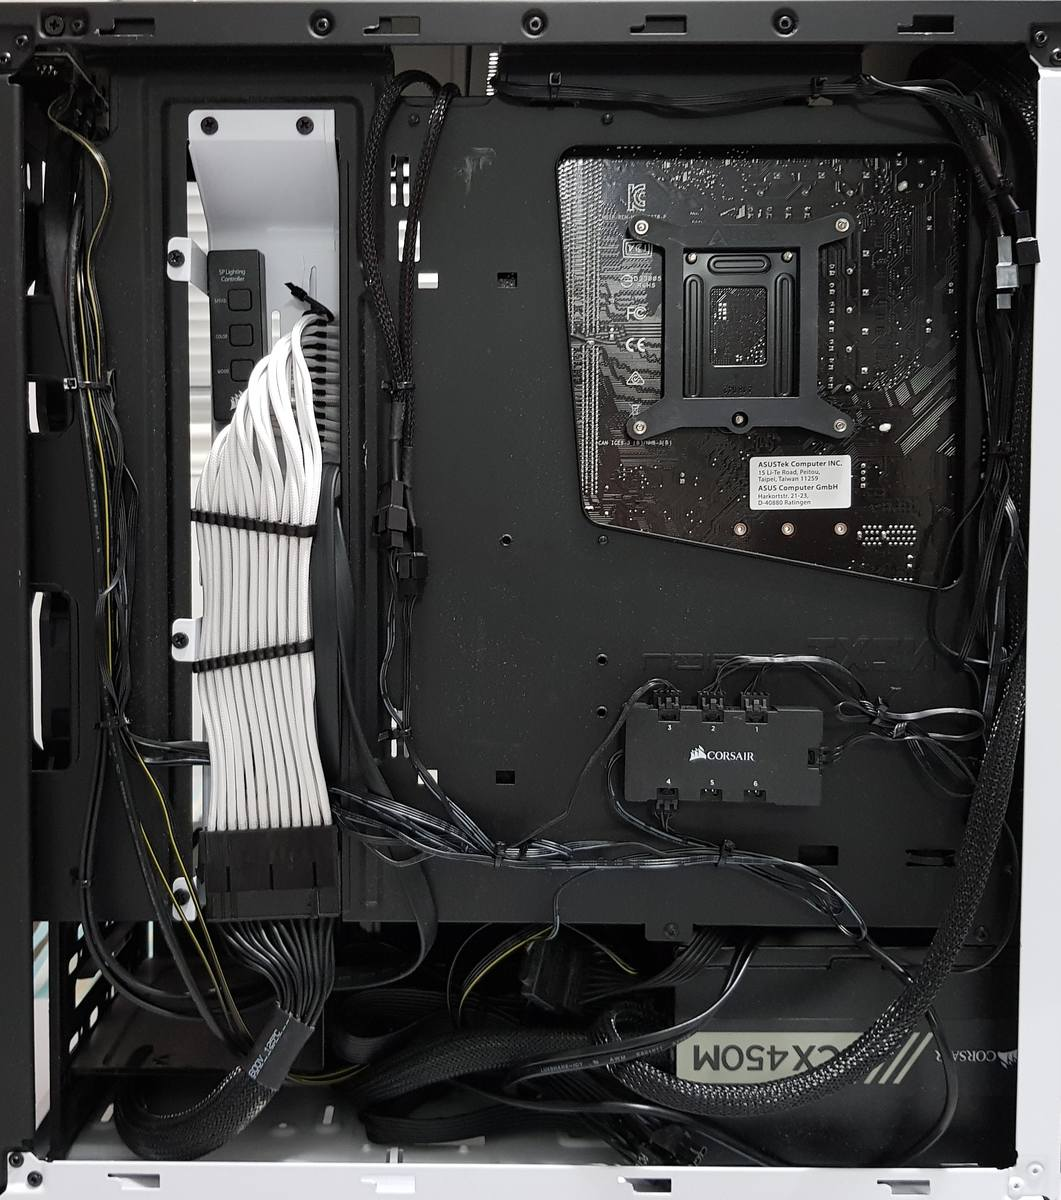 181222 - Rear cable management - The improvement